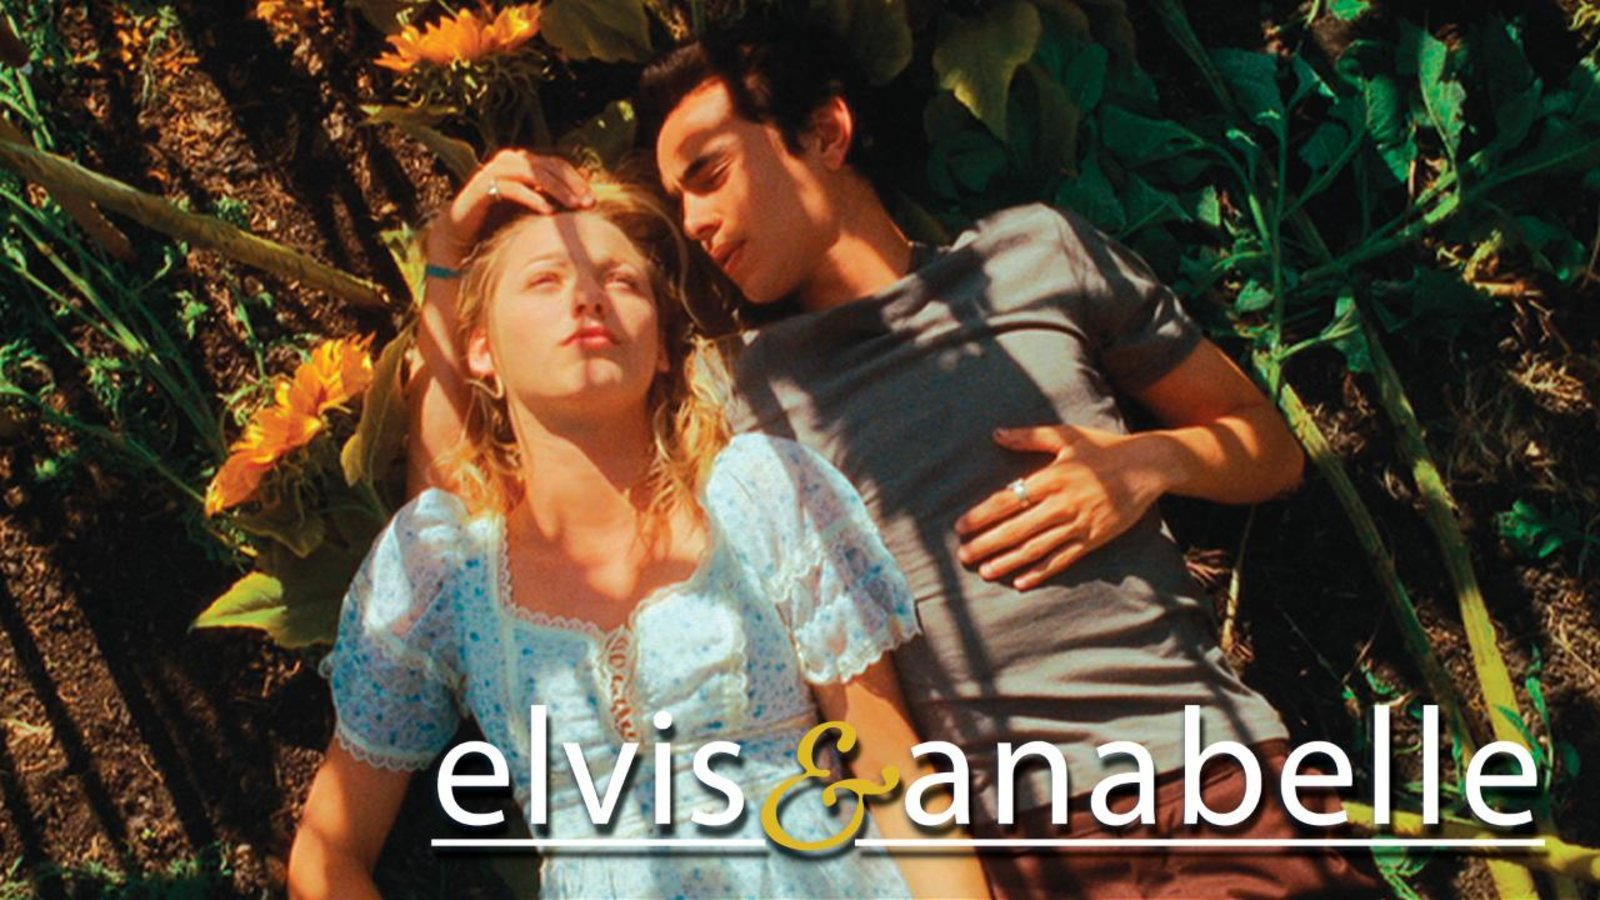 watch elvis and anabelle online free